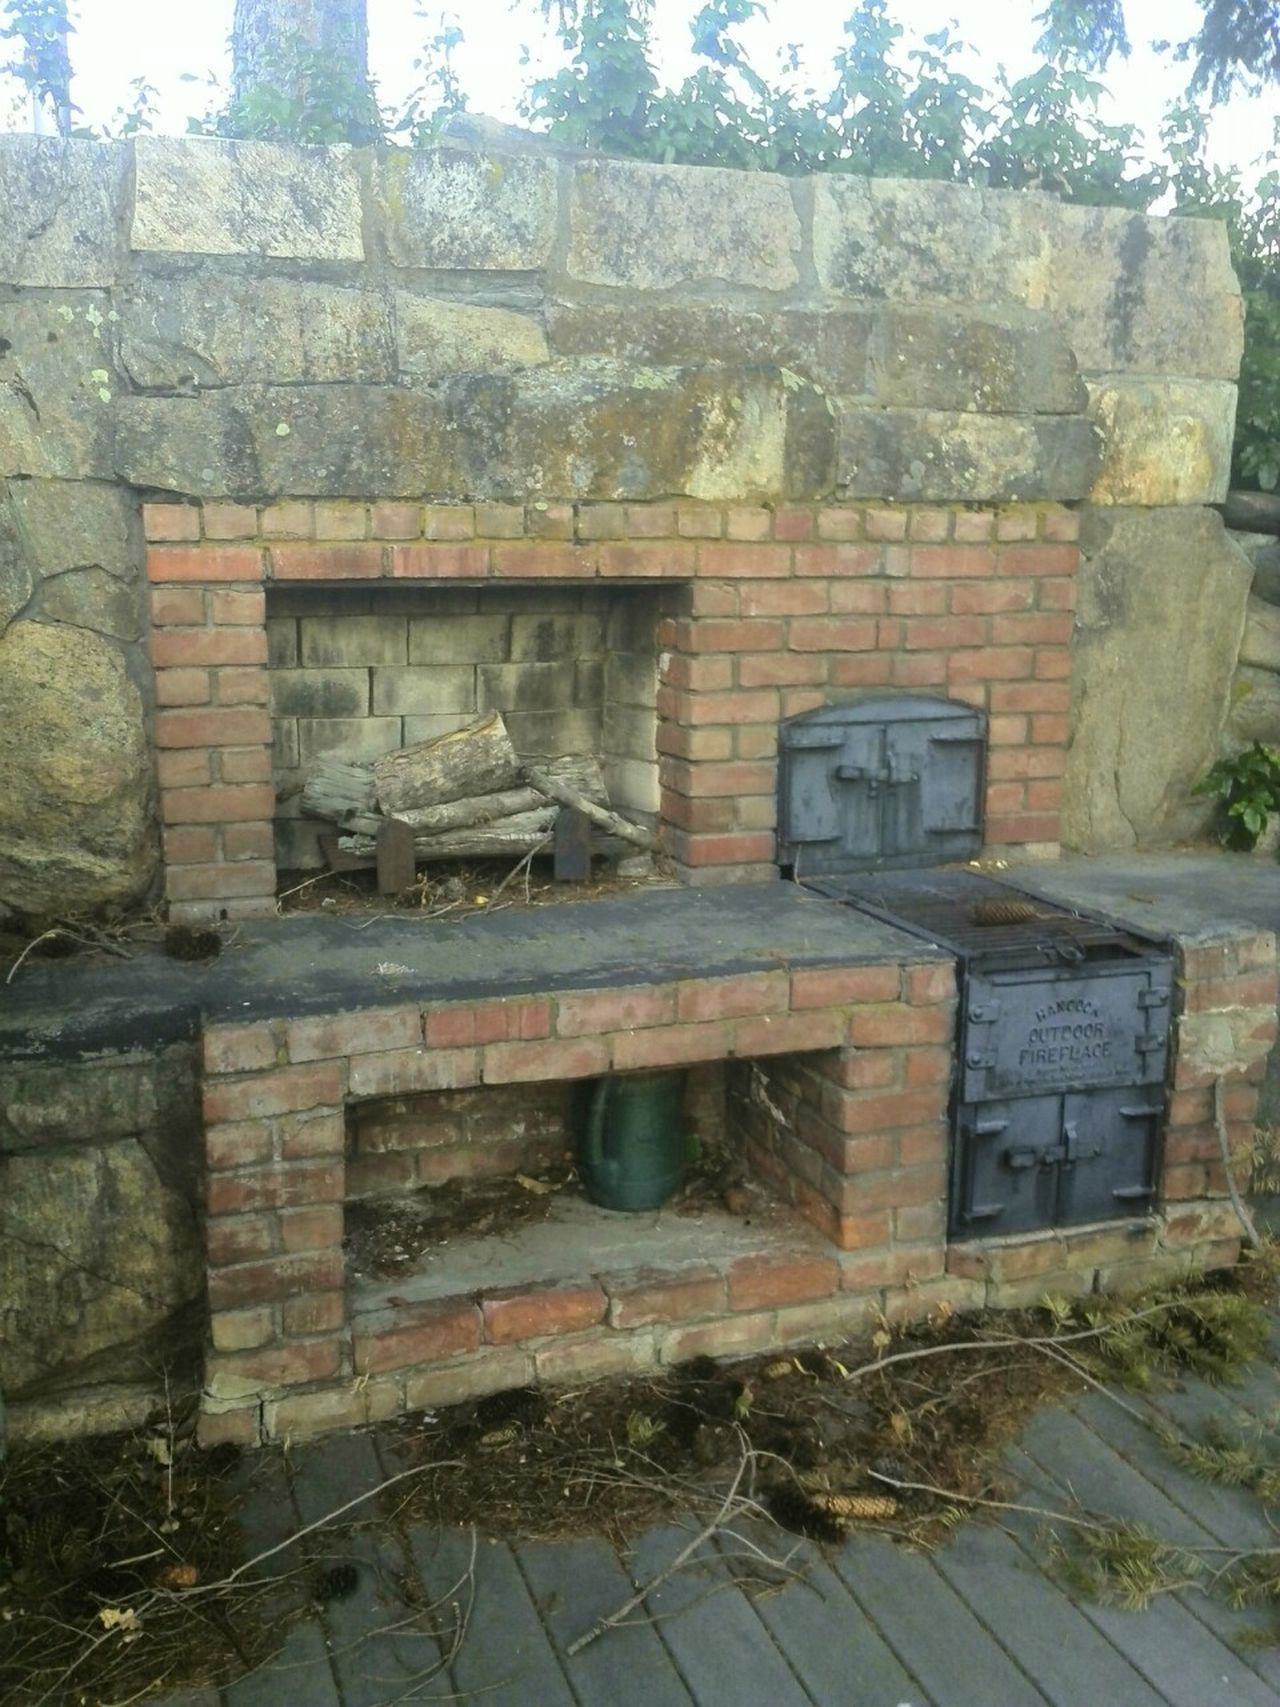 Just Interesting Check This Out Outdoor Kitchen Outdoor Life Outdoor Photography Stone Wall Brick Work Masonry Work Stove Omak, Wa No People Old Abandoned Places Outdoors Daytime Masonry